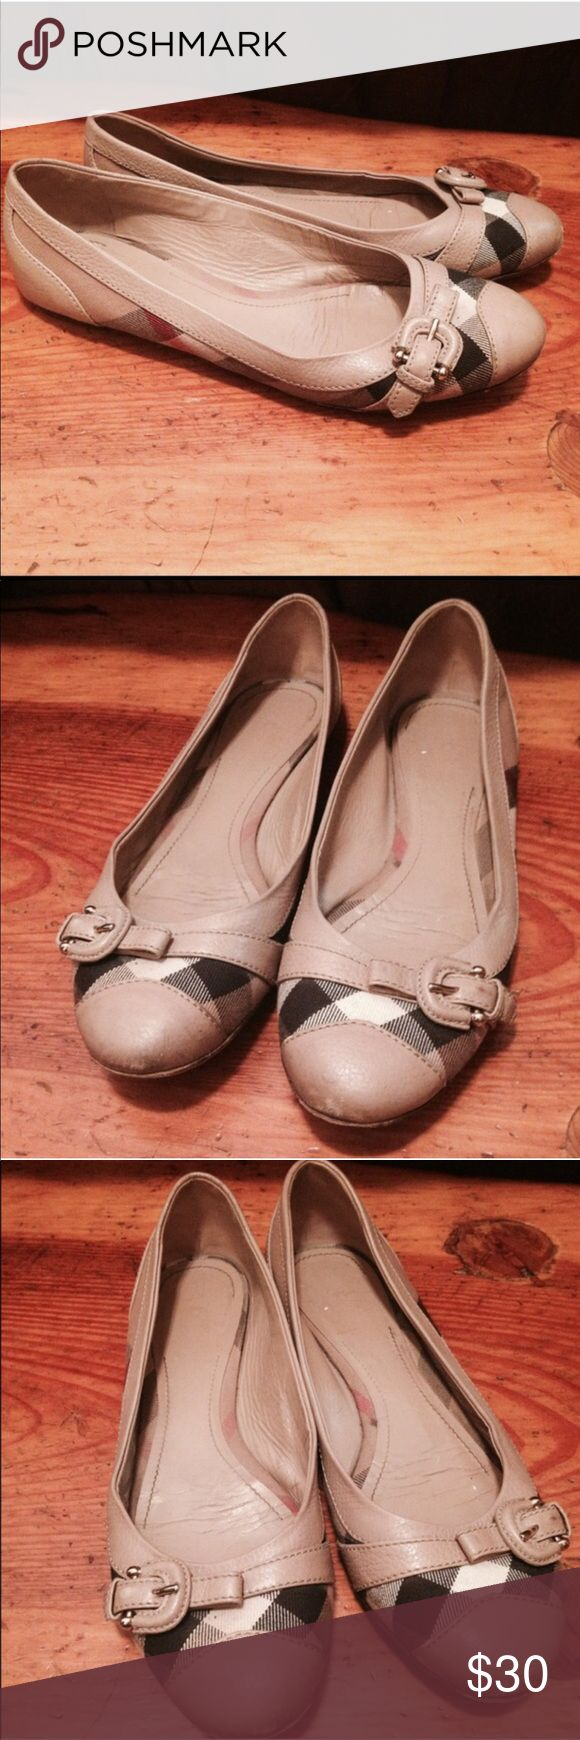 Burberry flats with buckle Authentic Burberry leather flats with original checkers pattern. Comes with a detail buckle for looks, its worn out on the soles and actual shoes but still have tons of life left. Burberry Shoes Flats & Loafers